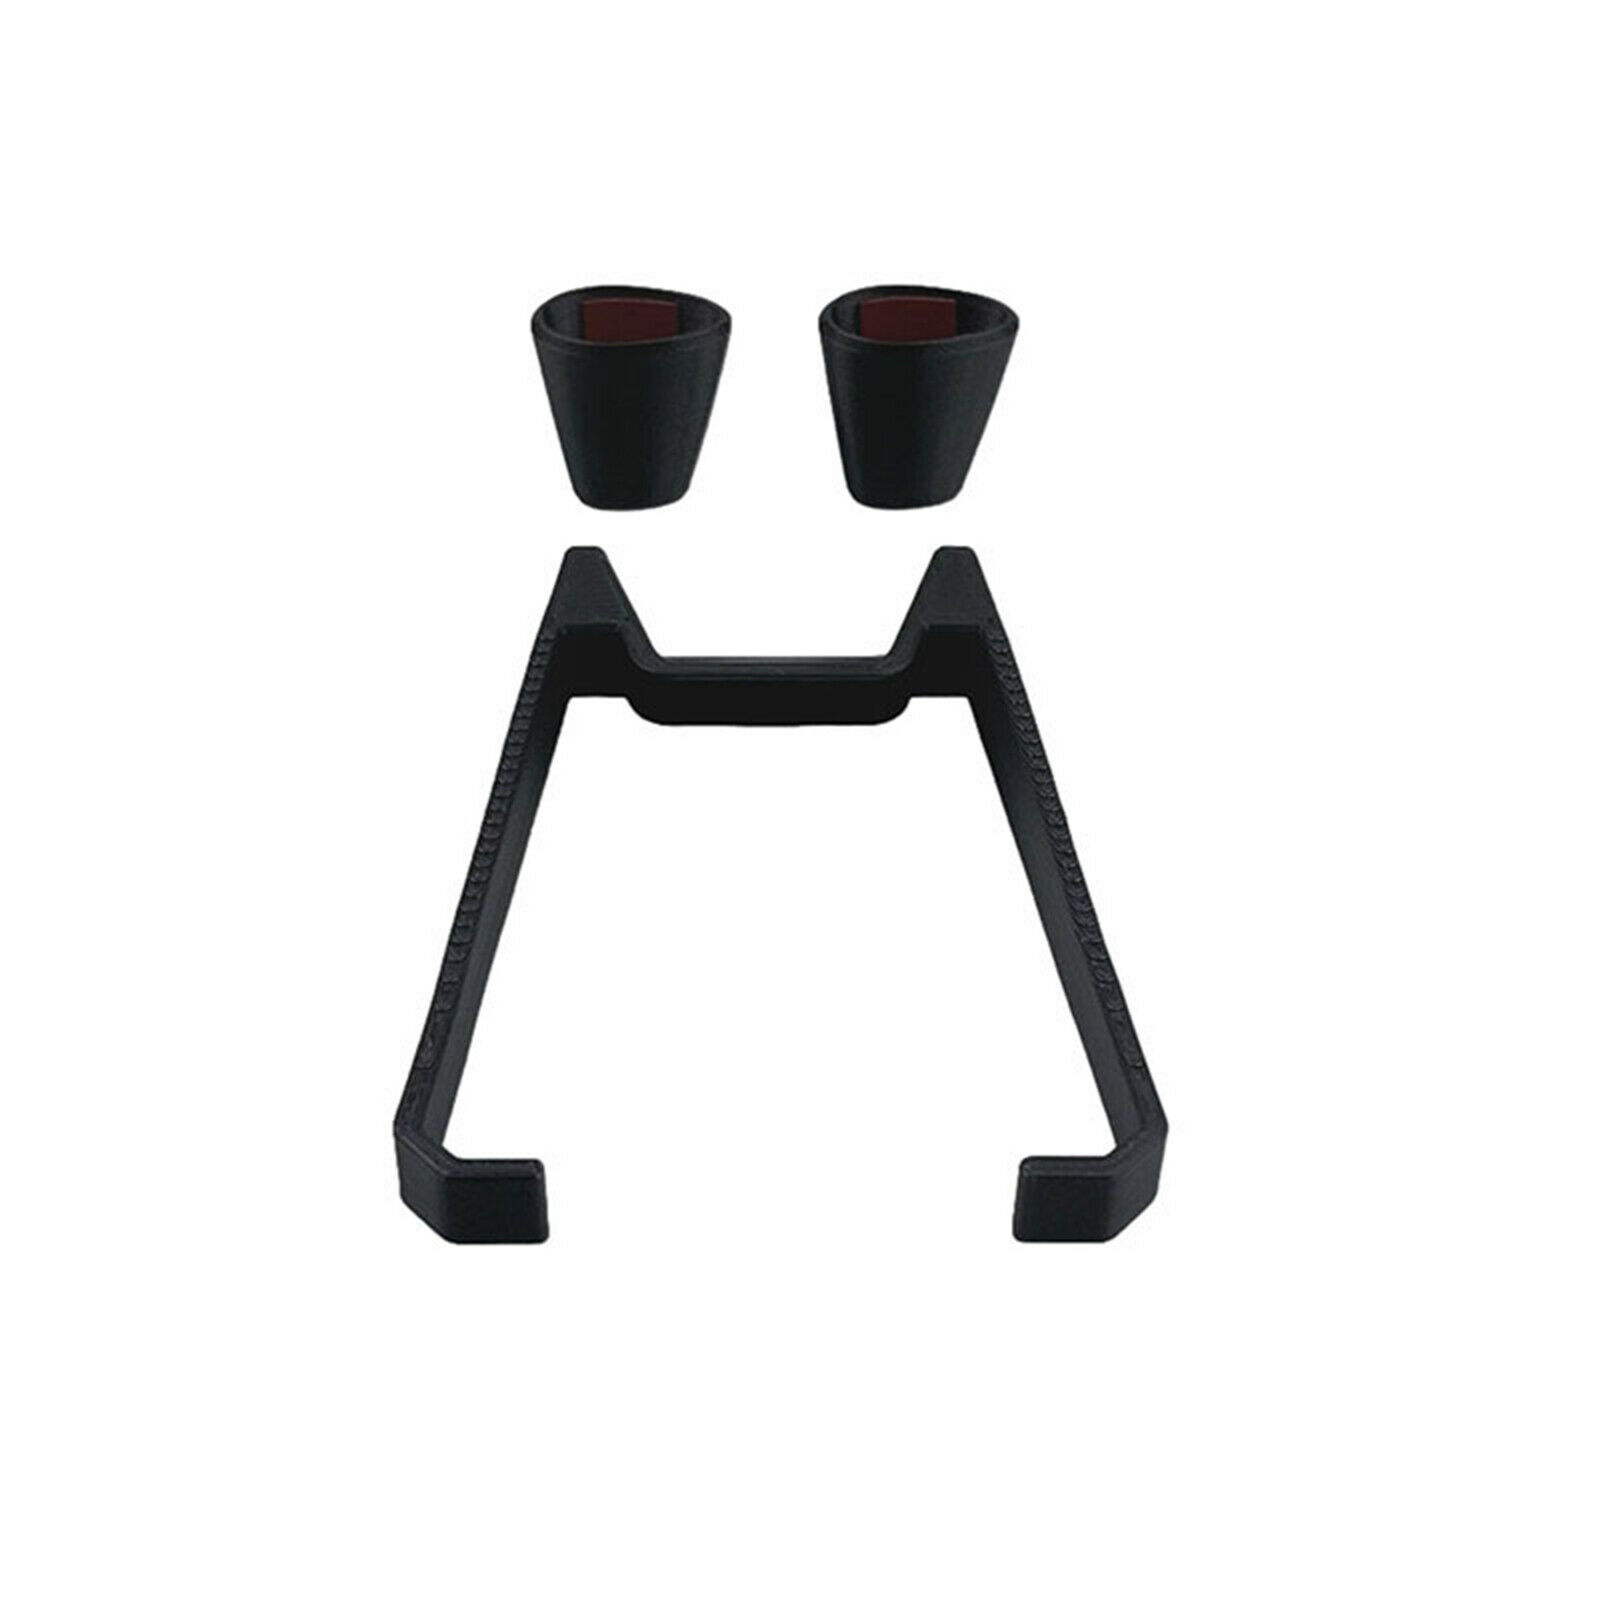 Silicone Pad Increased Tripod Landing Gear Bracket for FPV Drone Accessories ZIT